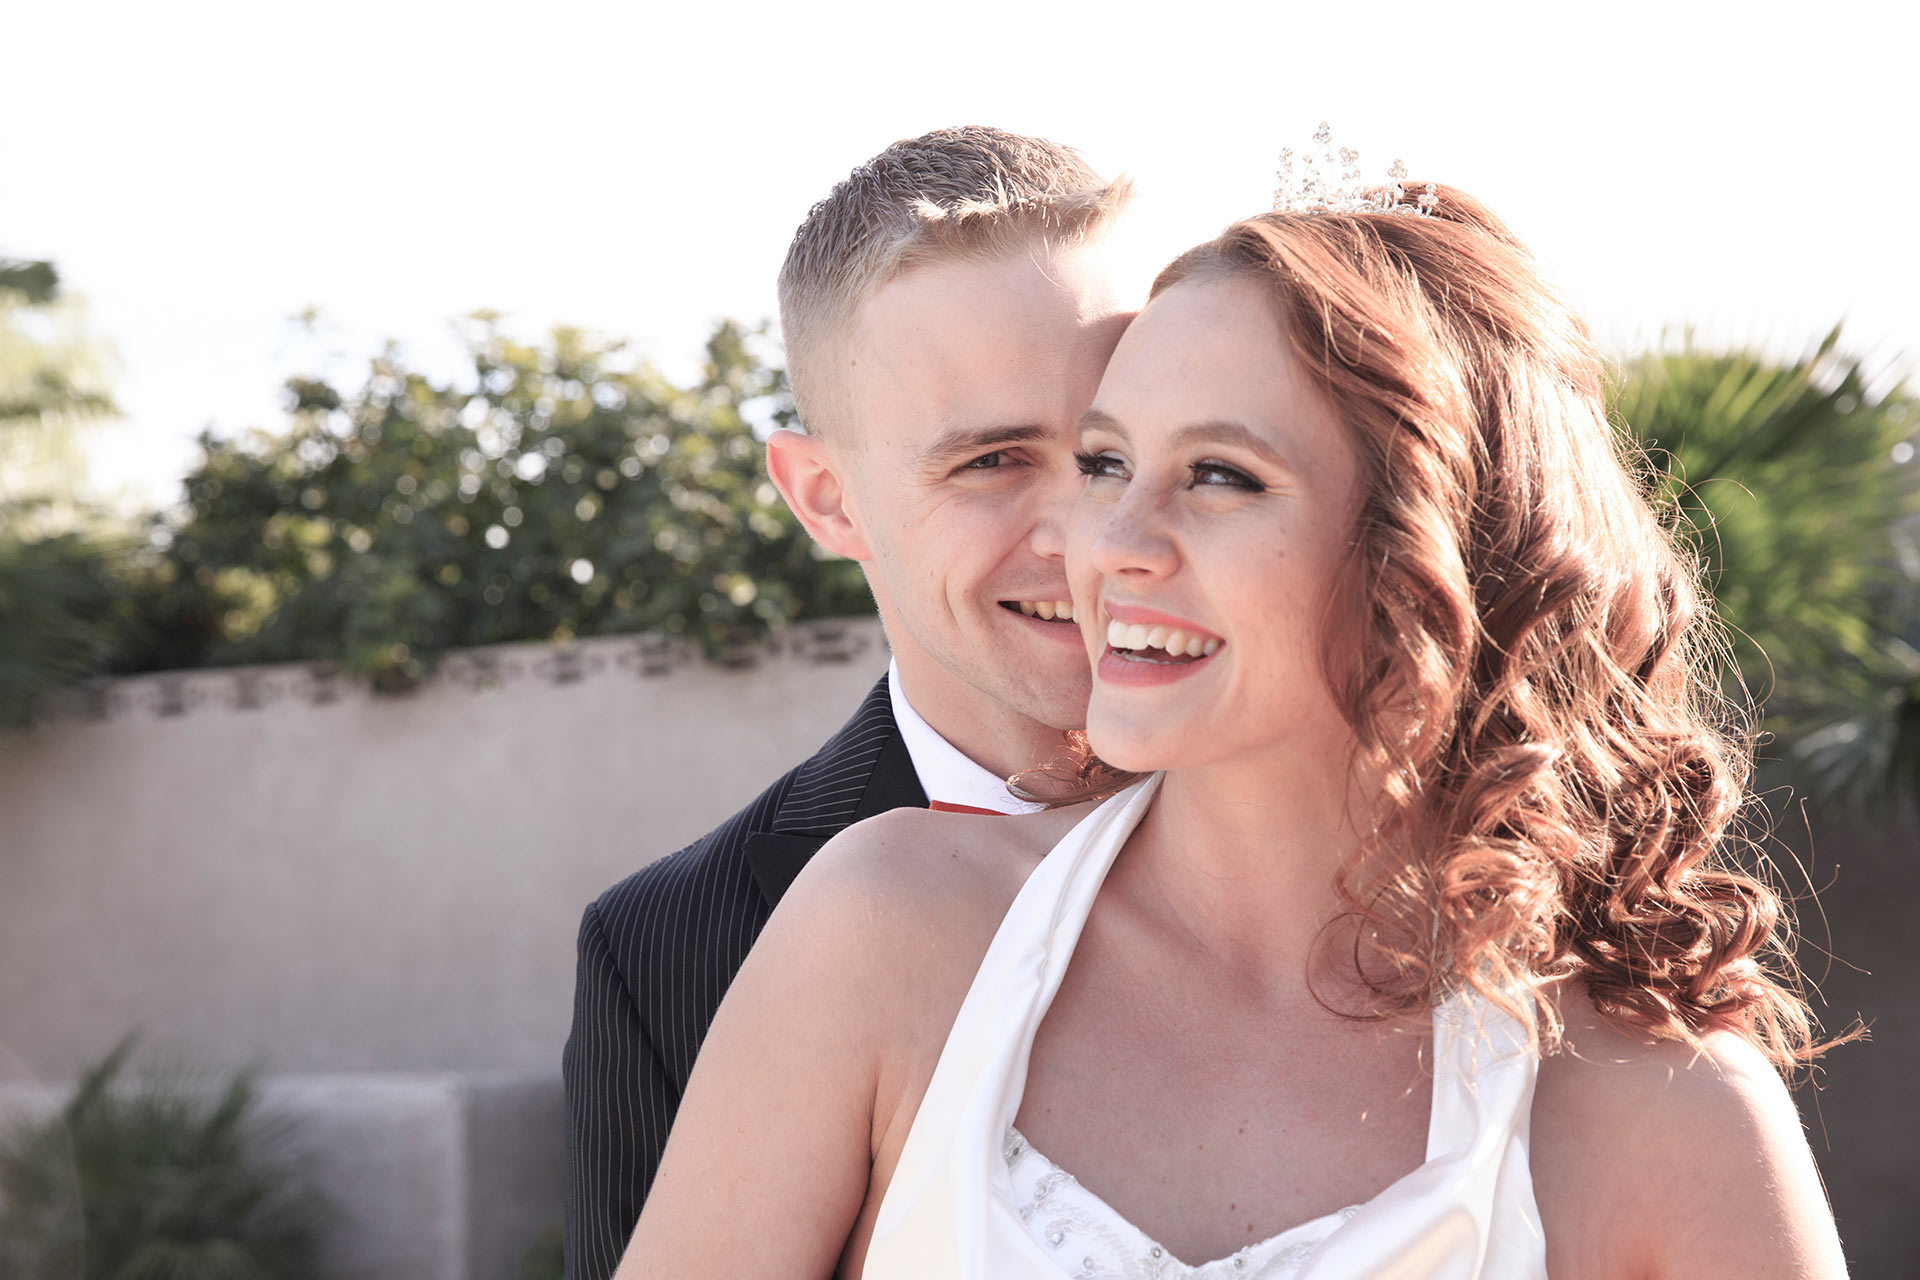 Wedding Photography At Summerlin Las Vegas